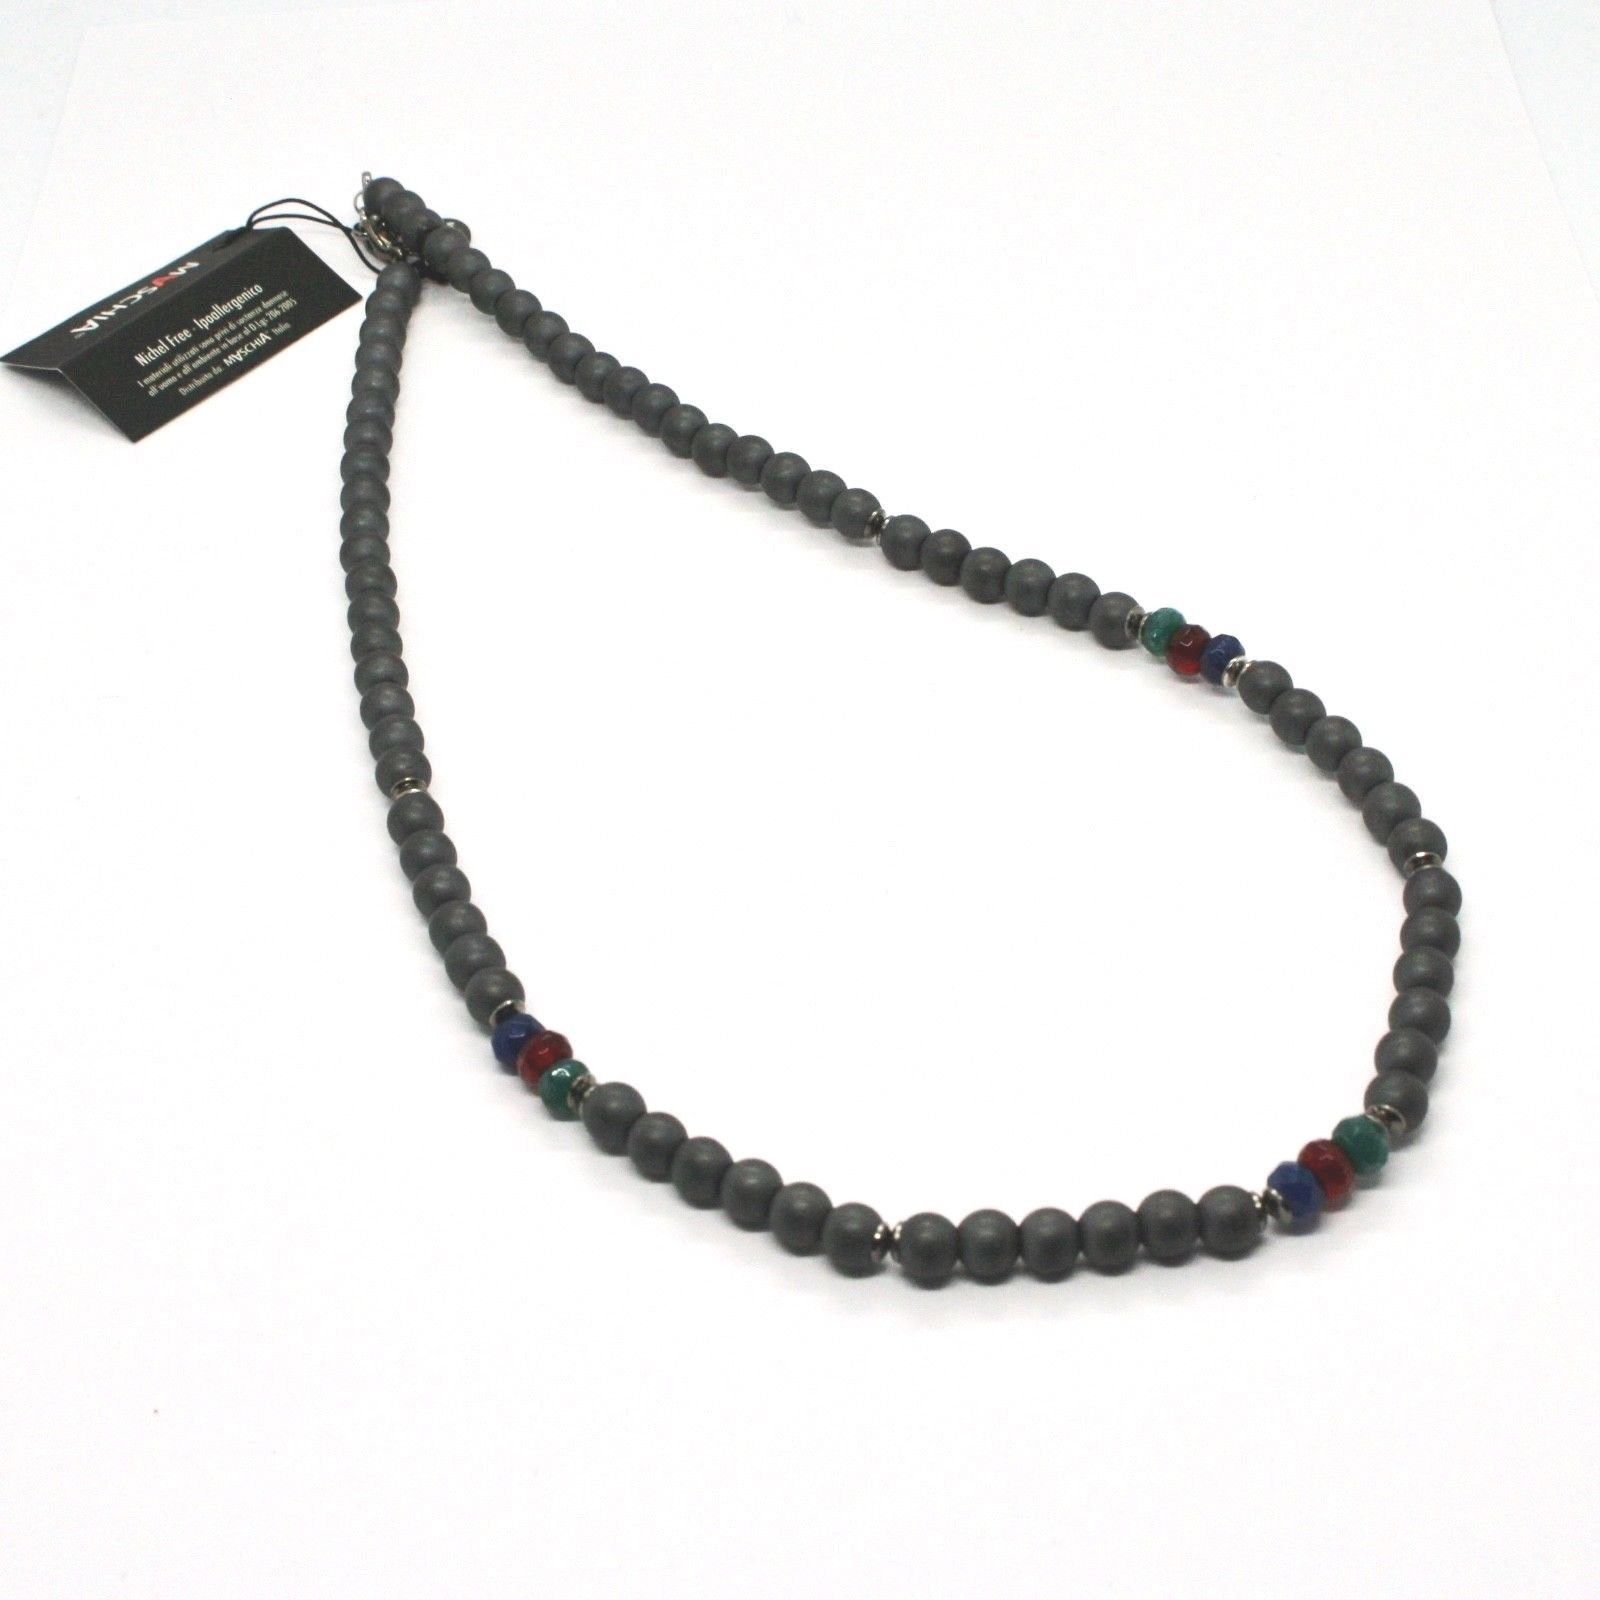 COLLANA IN ARGENTO 925 BRUNITO CON EMATITE E AGATA MADE IN ITALY BY MASCHIA